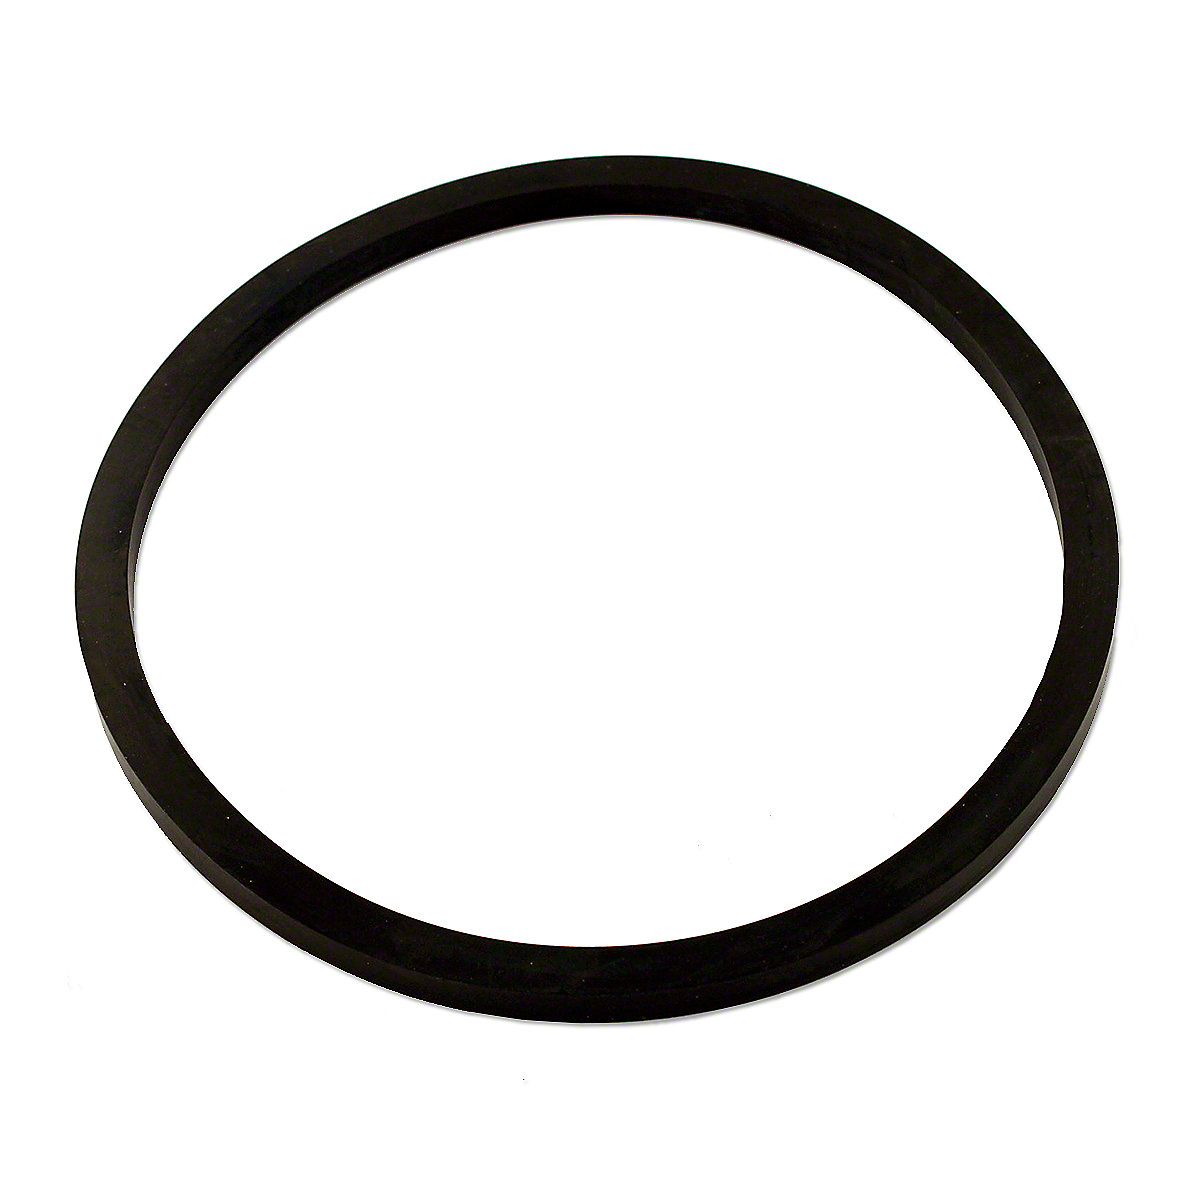 Oil Filter Cover Plate Gasket For Massey Ferguson: TE20, TO20.